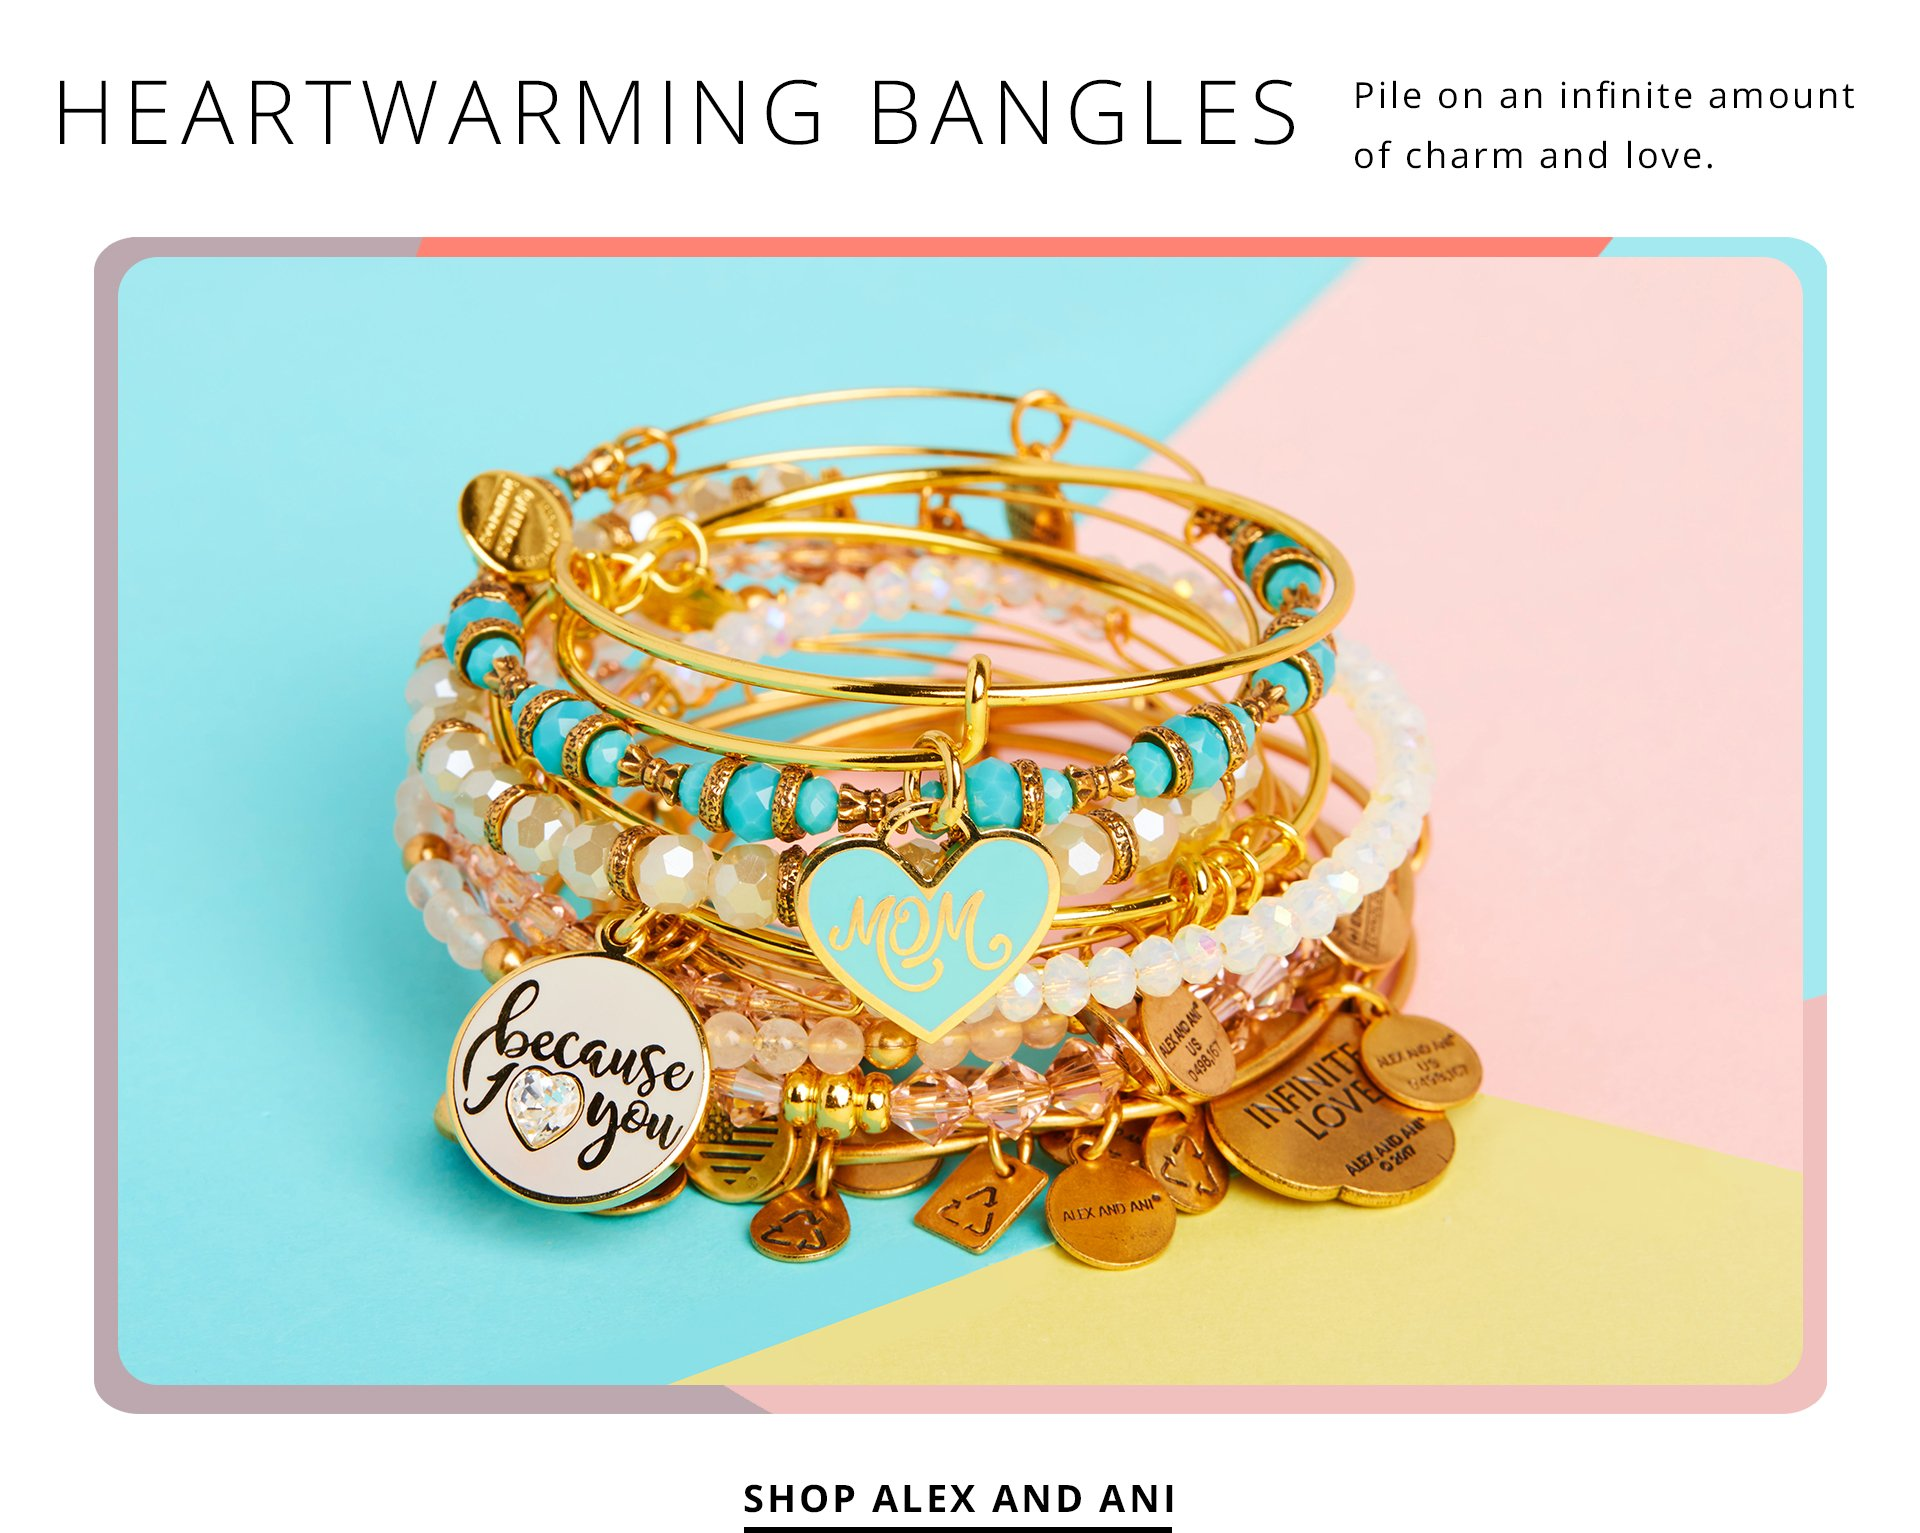 Heartwarming Bangles. Pile on an infinite amount of charm and love. Shop Alex and ani